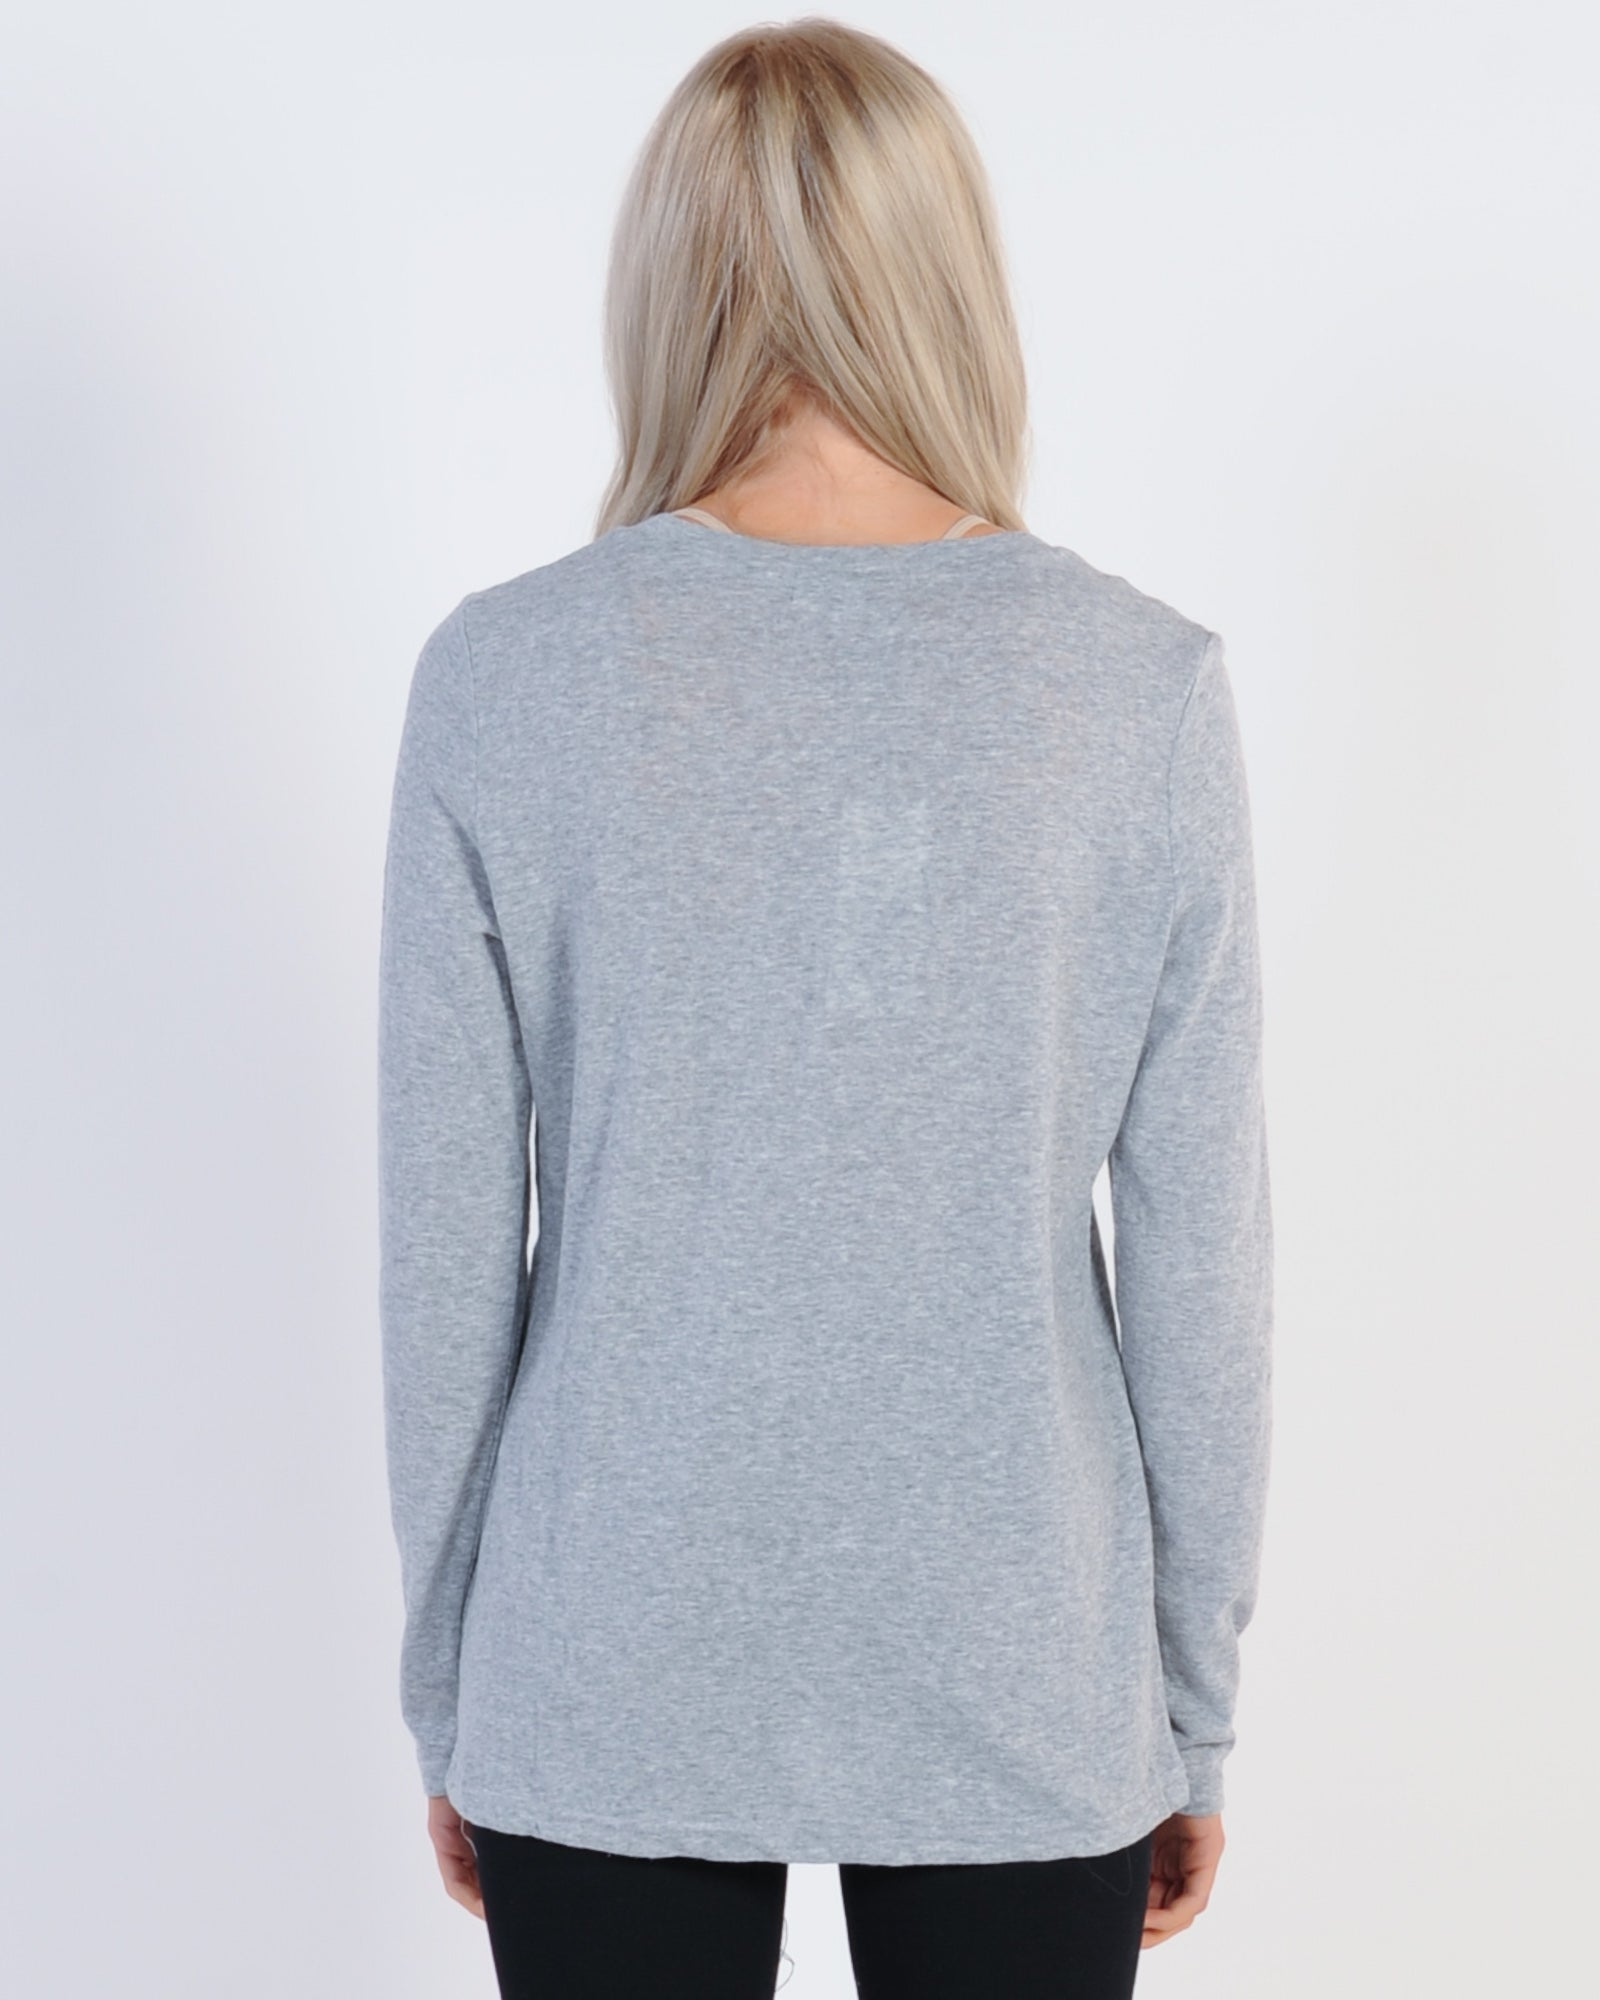 Madison The Label Madison L/S Top - Grey